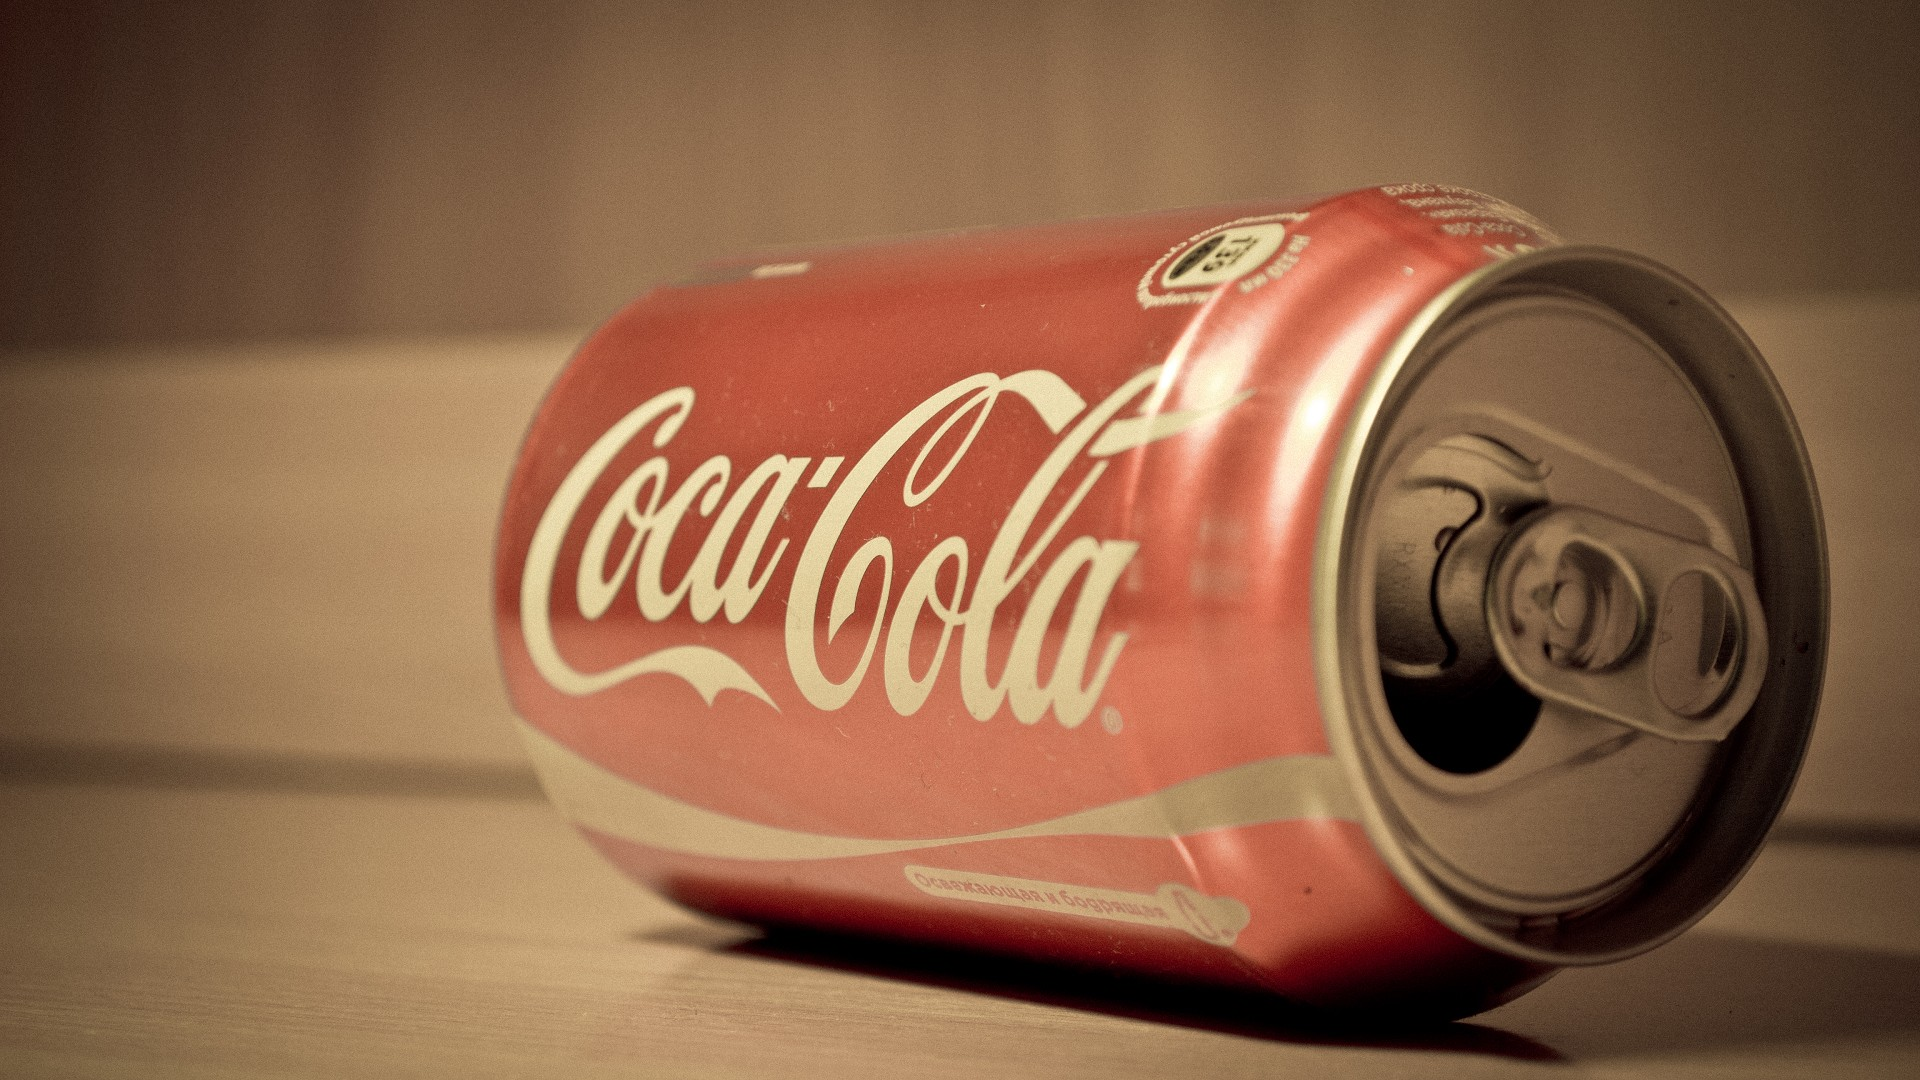 Molto Coca Cola Wallpaper (48 Wallpapers) – Adorable Wallpapers VA23